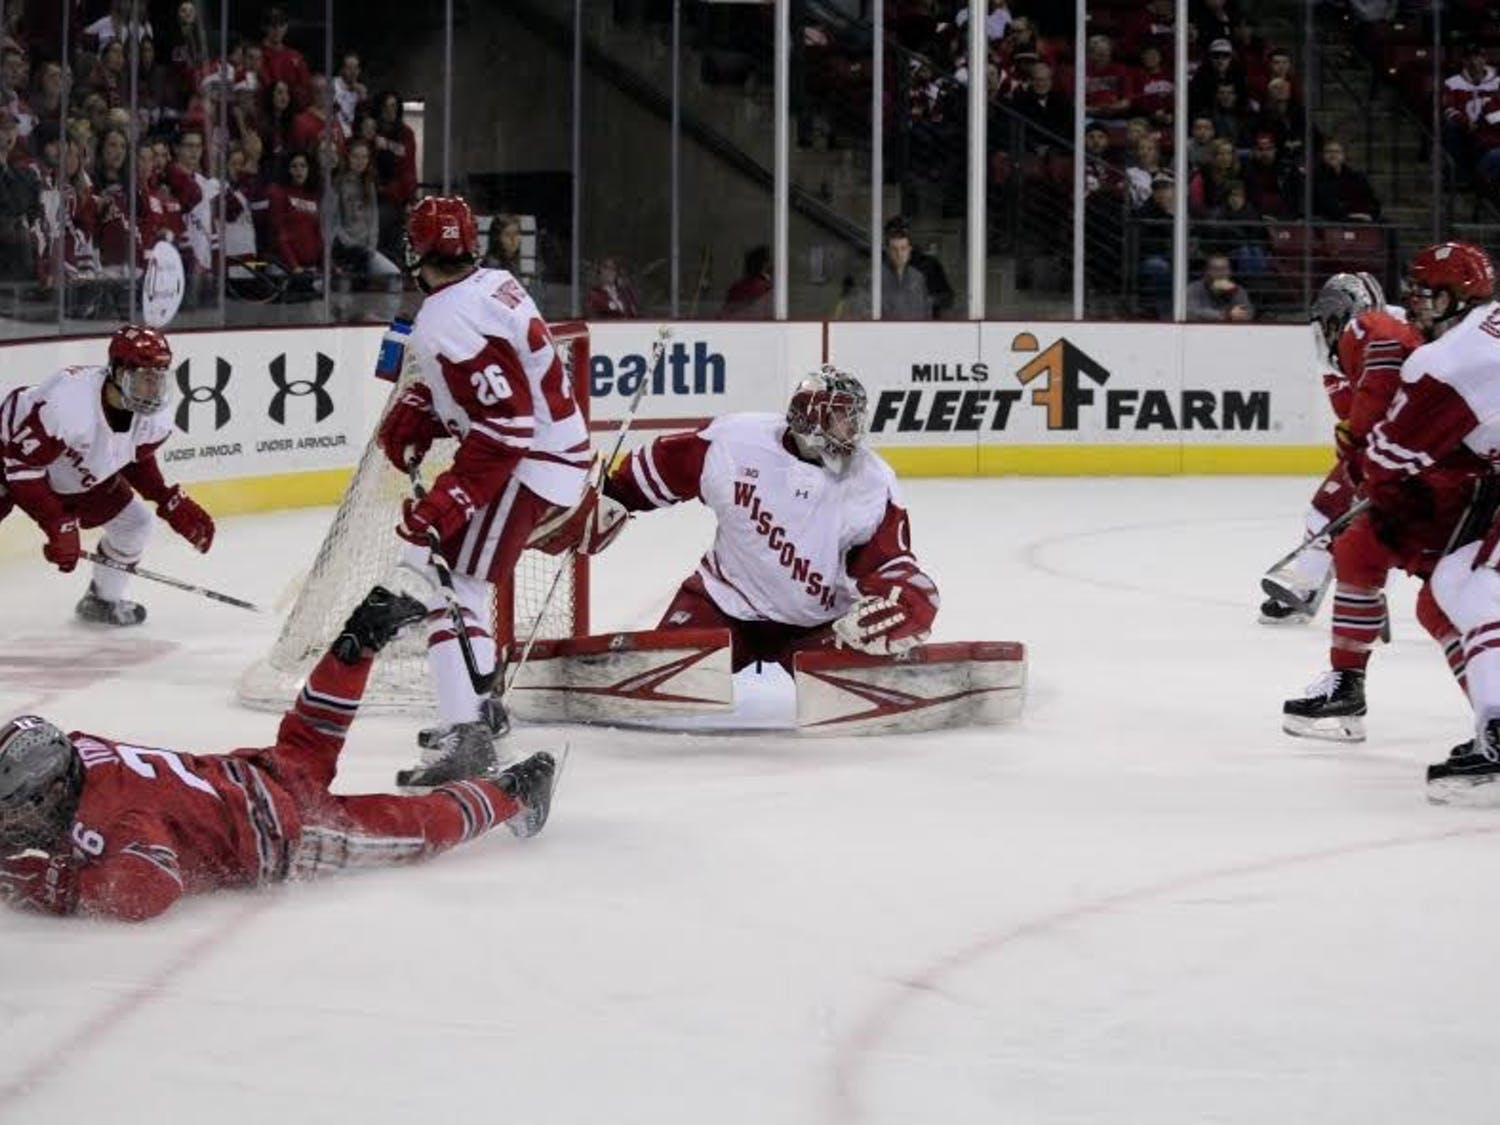 Junior Jack Berry stopped just 11 of the 15 shots he faced in Friday night's 5-0 loss, costing the Badgers a chance in a game where they outshot North Dakota.